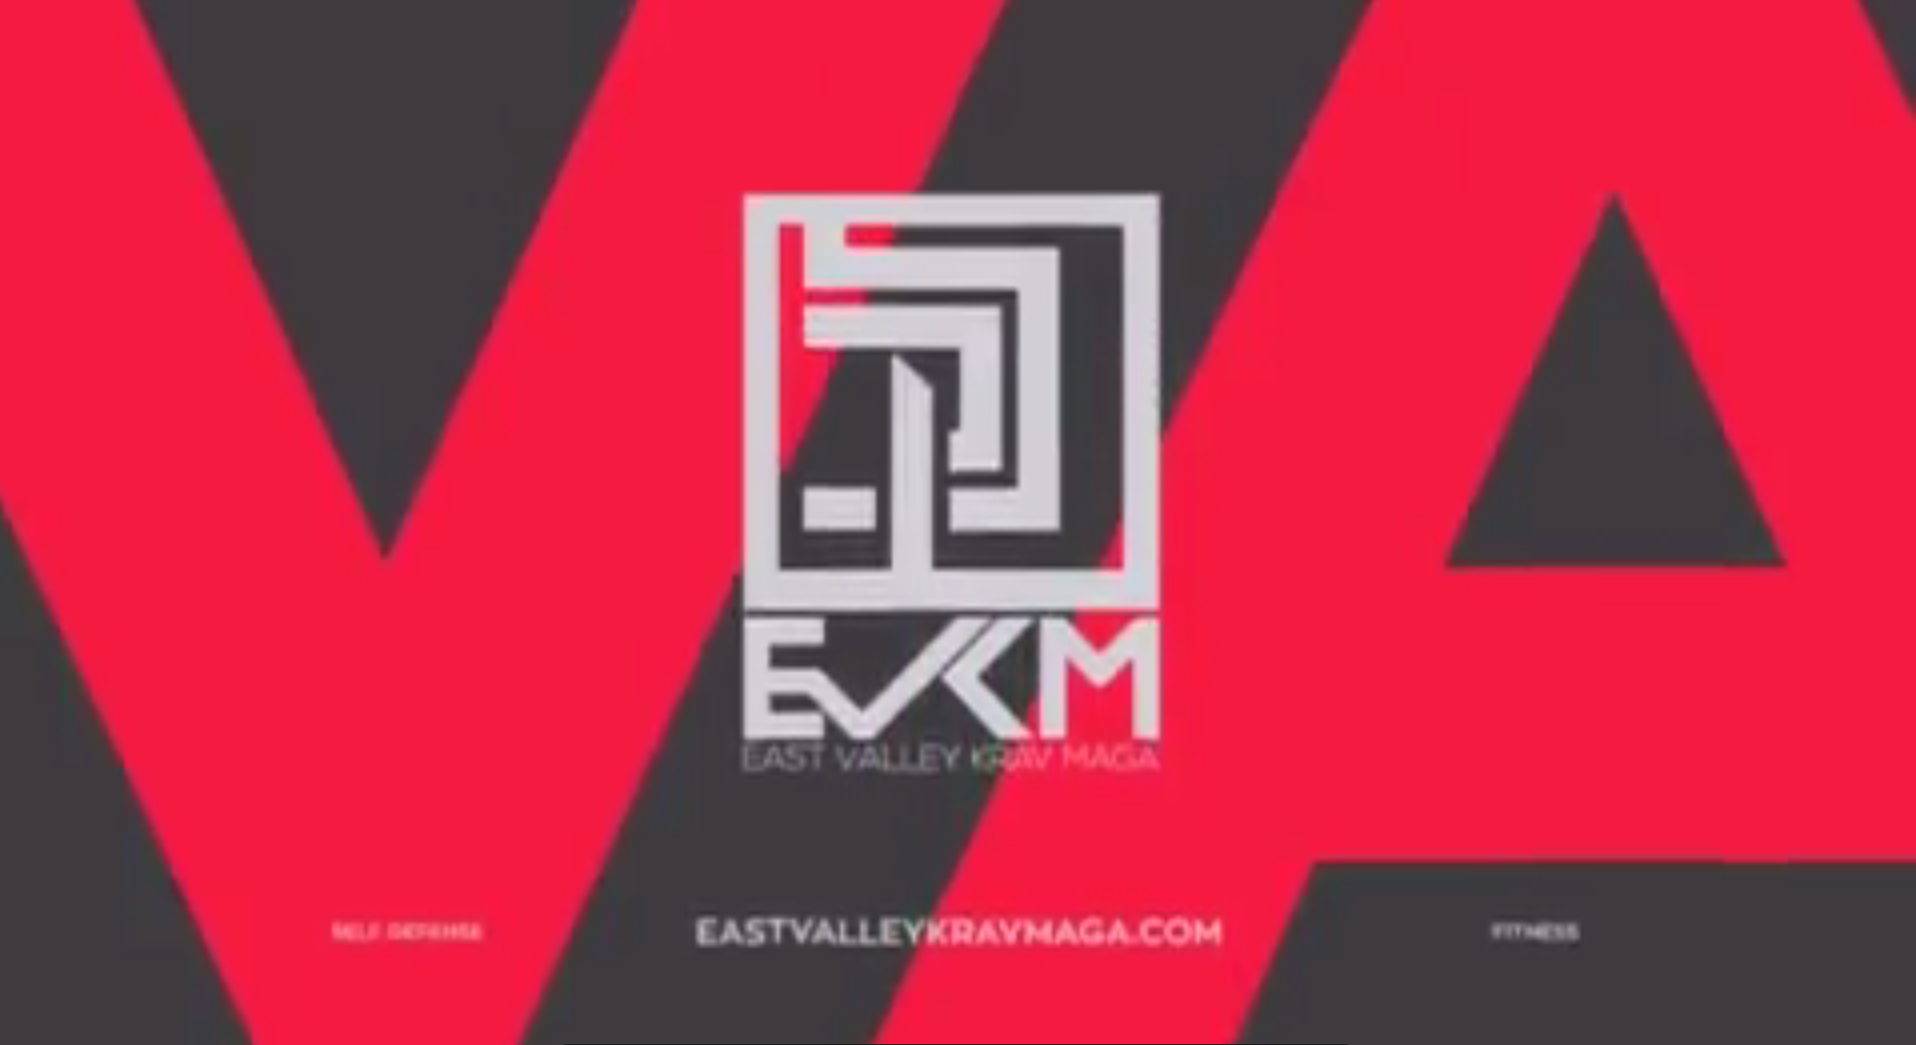 East Valley Krav Maga teaches self defense and fitness through dynamic and high energy classes in a professional setting